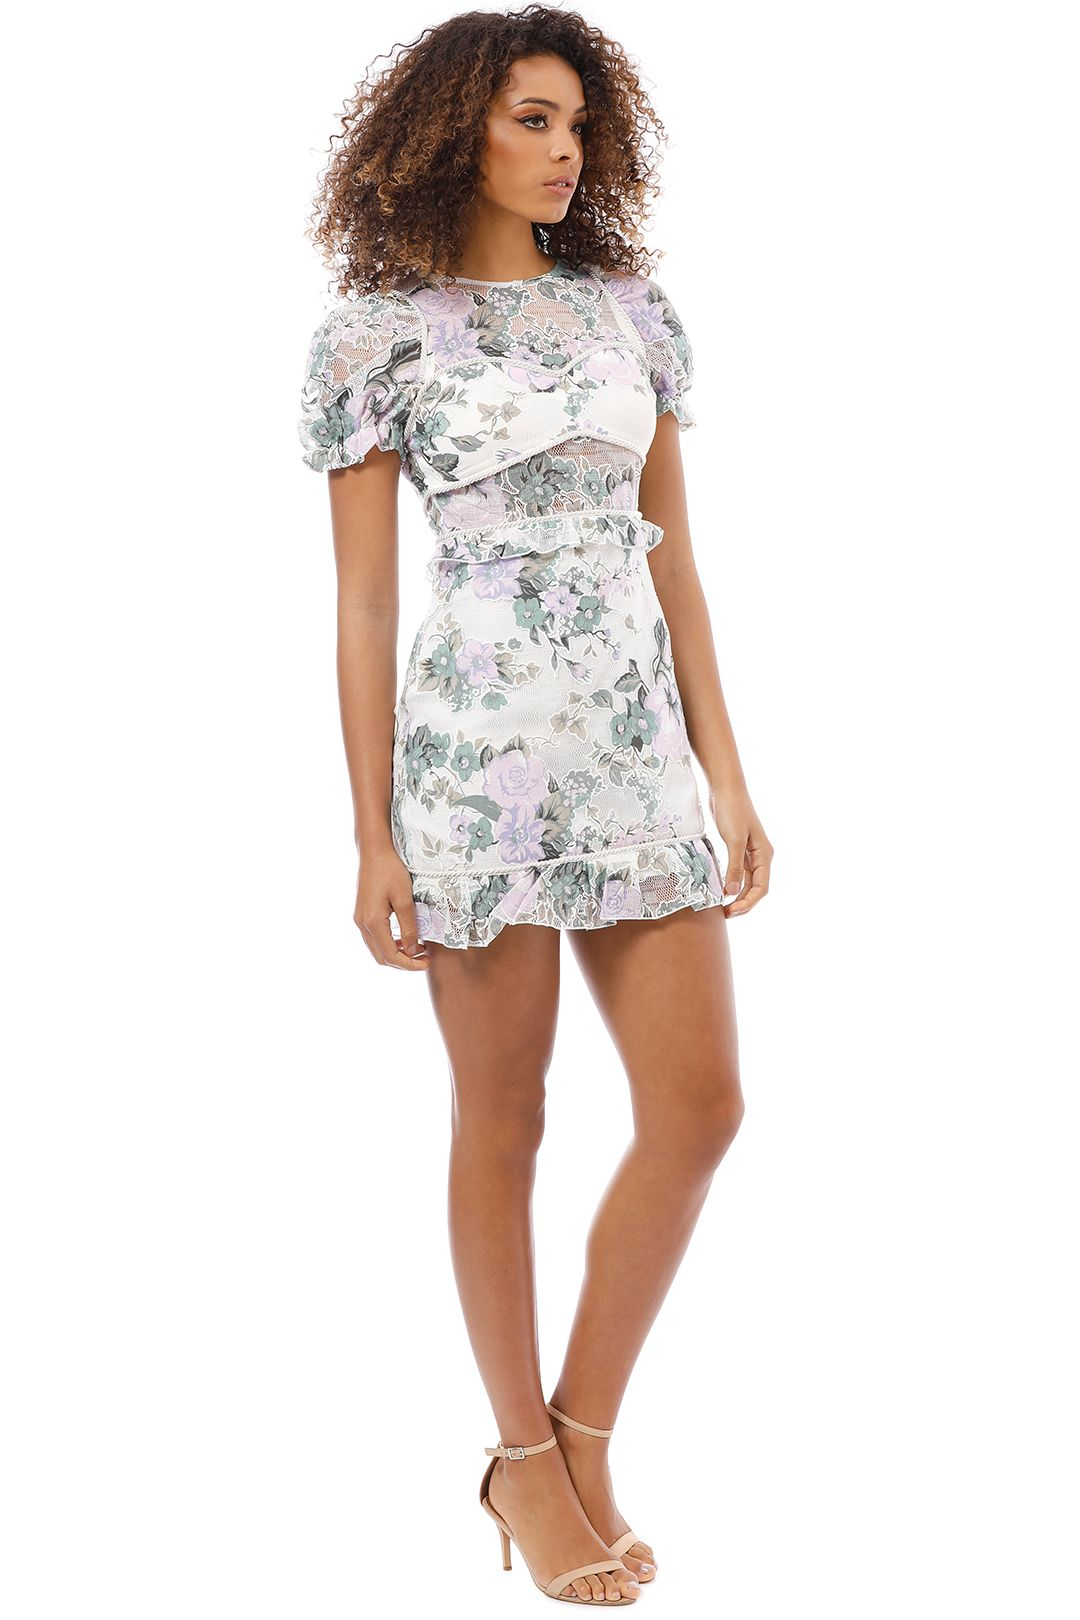 Alice McCall - So Darling Dress - Lavender - Side